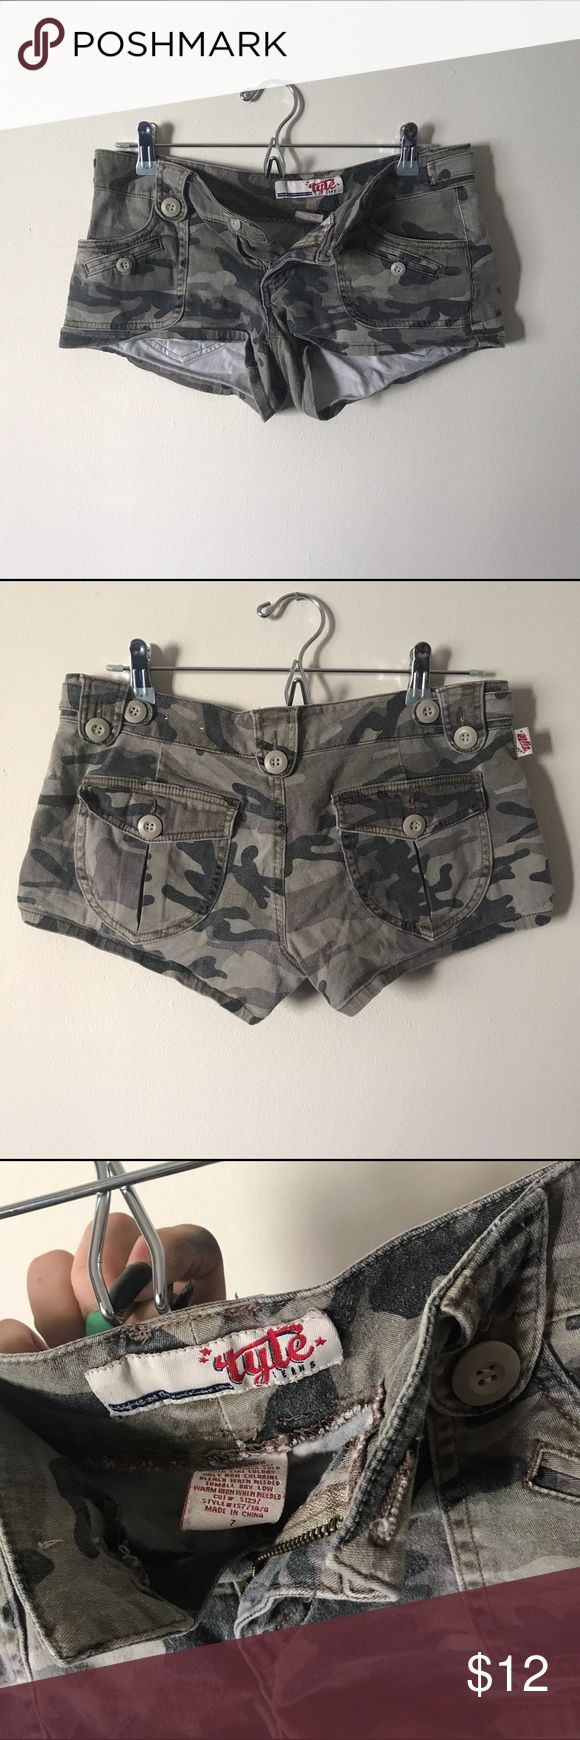 CUTE & COMFY • Camouflage stretchy shorts ☀️ CUTE & SUPER COMFY camouflage stretchy shorts size 7 ⬇️ --- >> worn in. still great shape just are extra comfy  >> true to size. do have a bit of stretch to them  >> size 7 --- #camo #army #shorts #relaxed #summer #casual #green #camouflage  #distressed Shorts